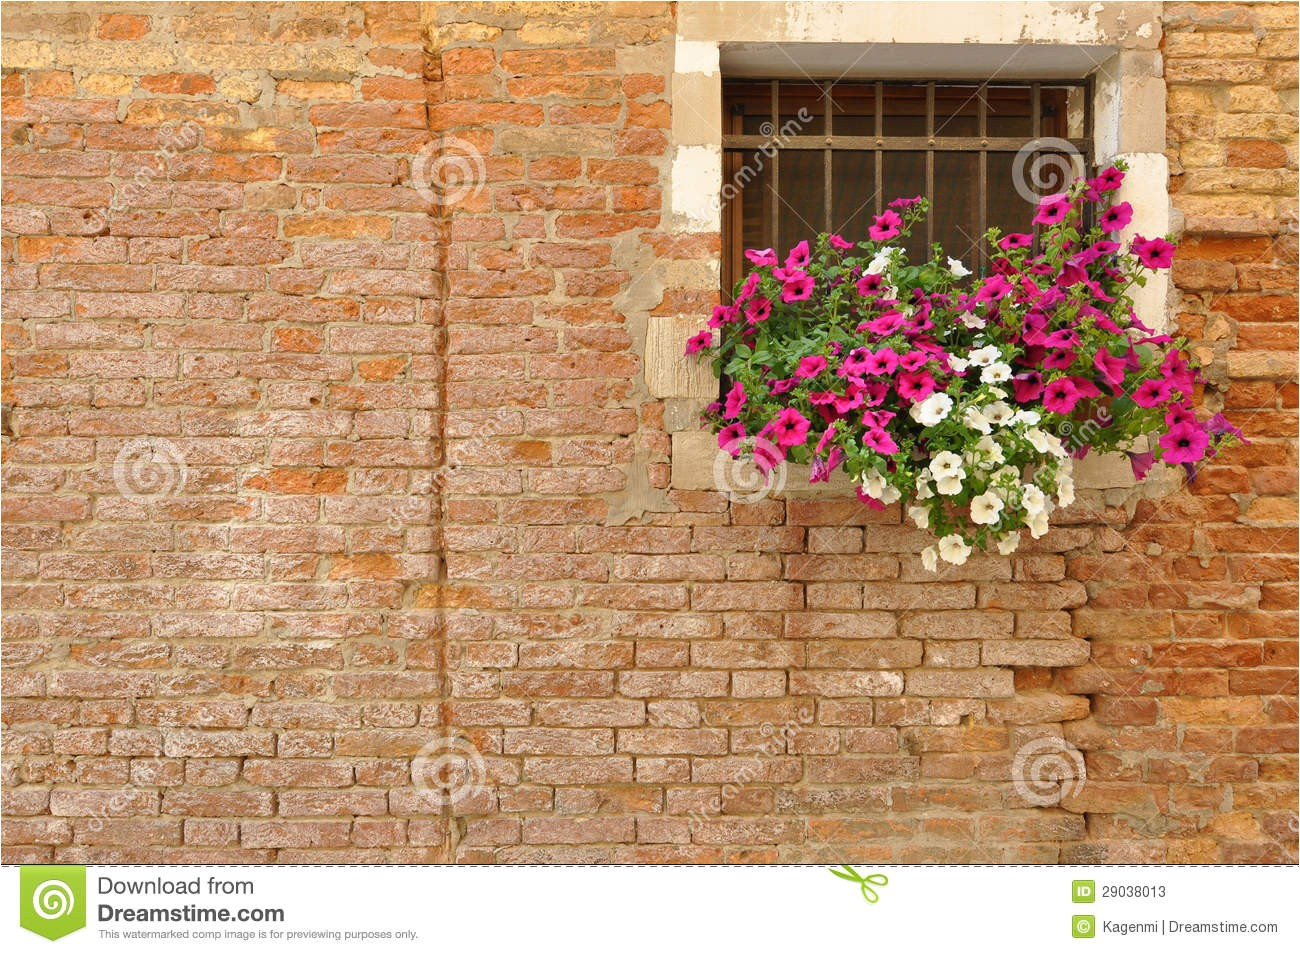 stock photos pink white petunia flowers windowsill brick italian home image29038013